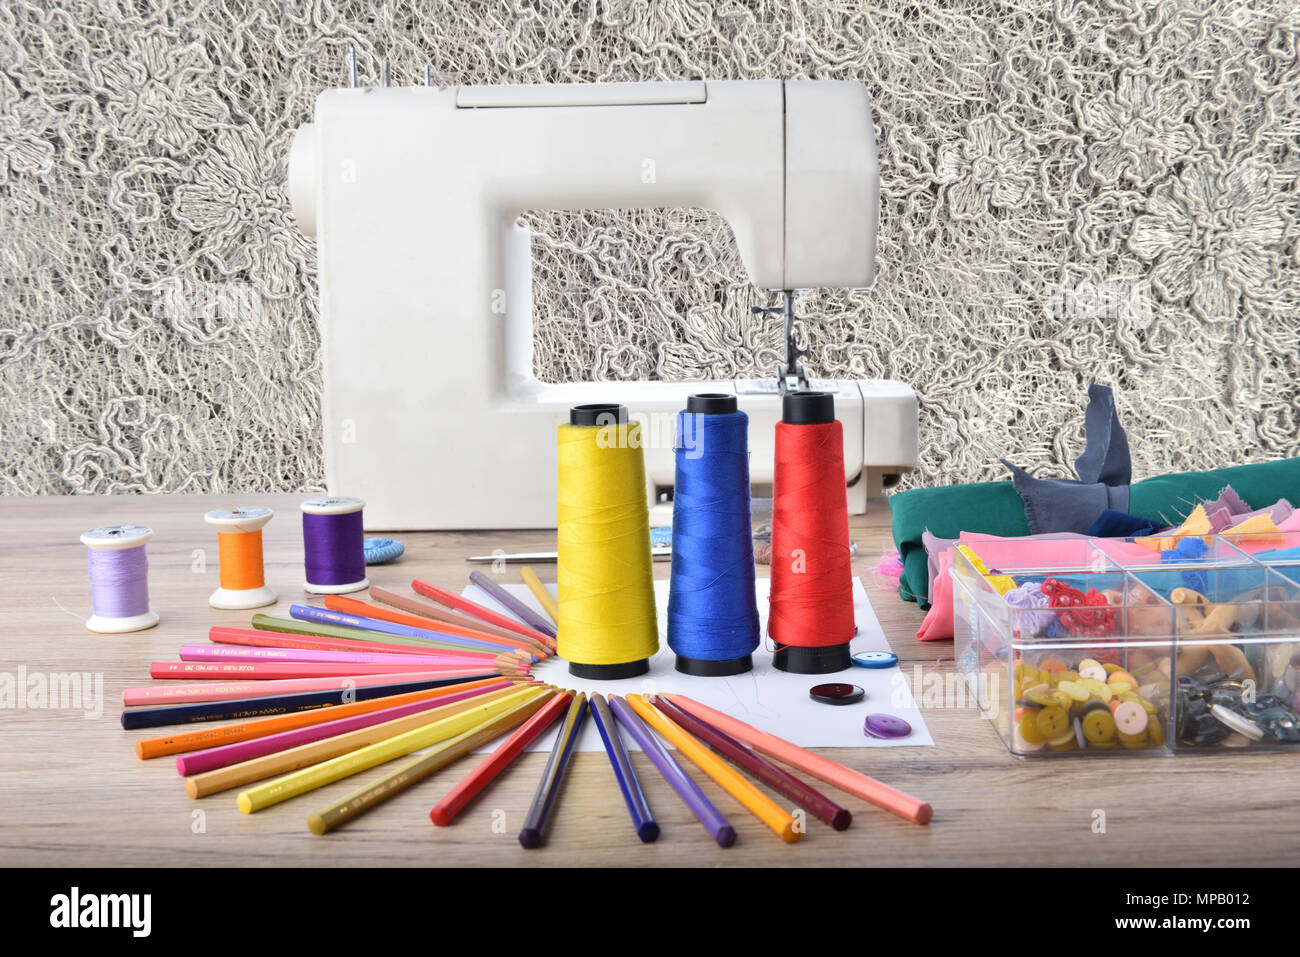 Fashion Design Tools For Sewing On Wooden Background Stock Photo Alamy